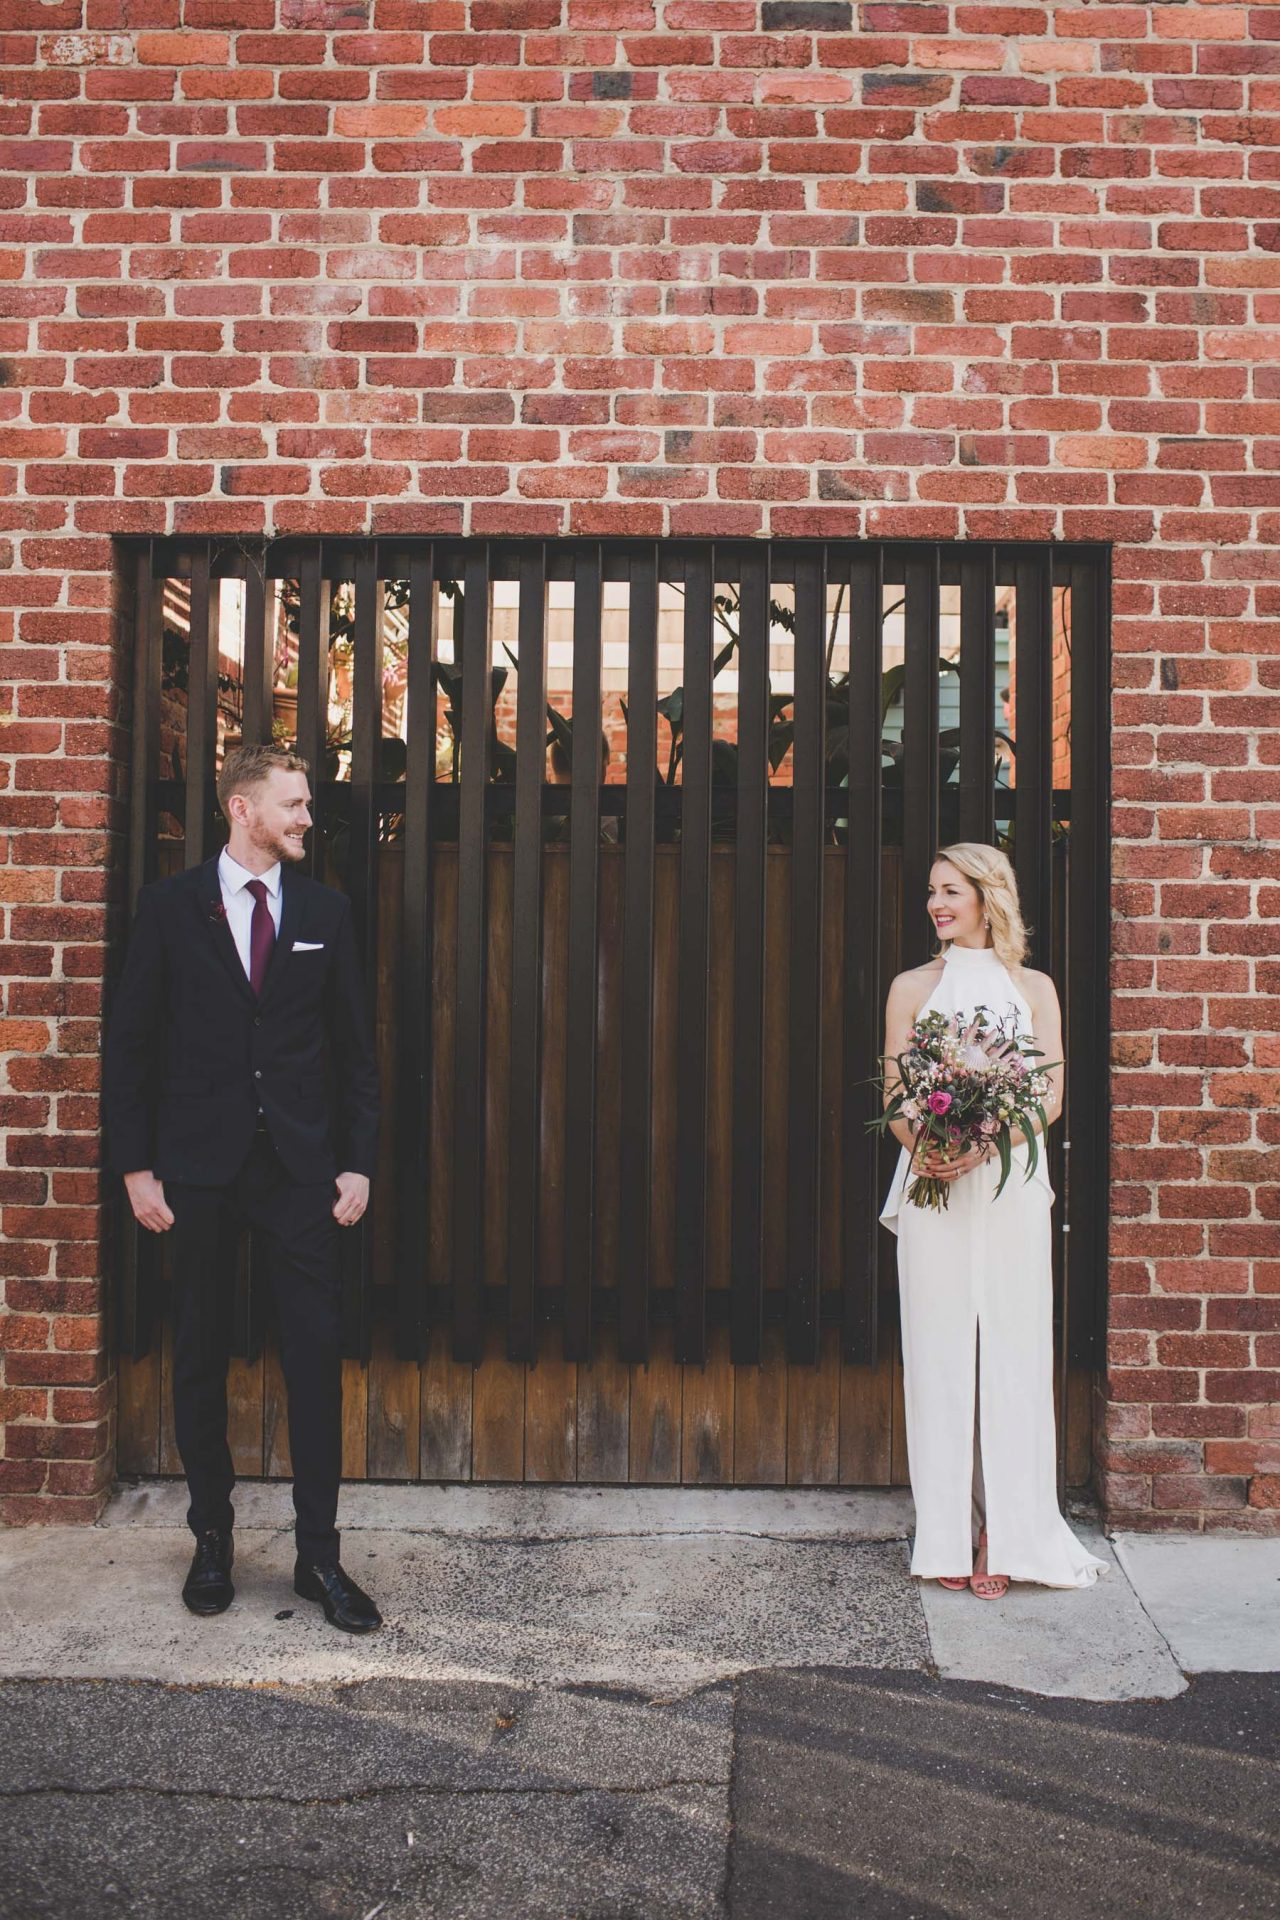 Sarah + Kieran // The Craft & Co